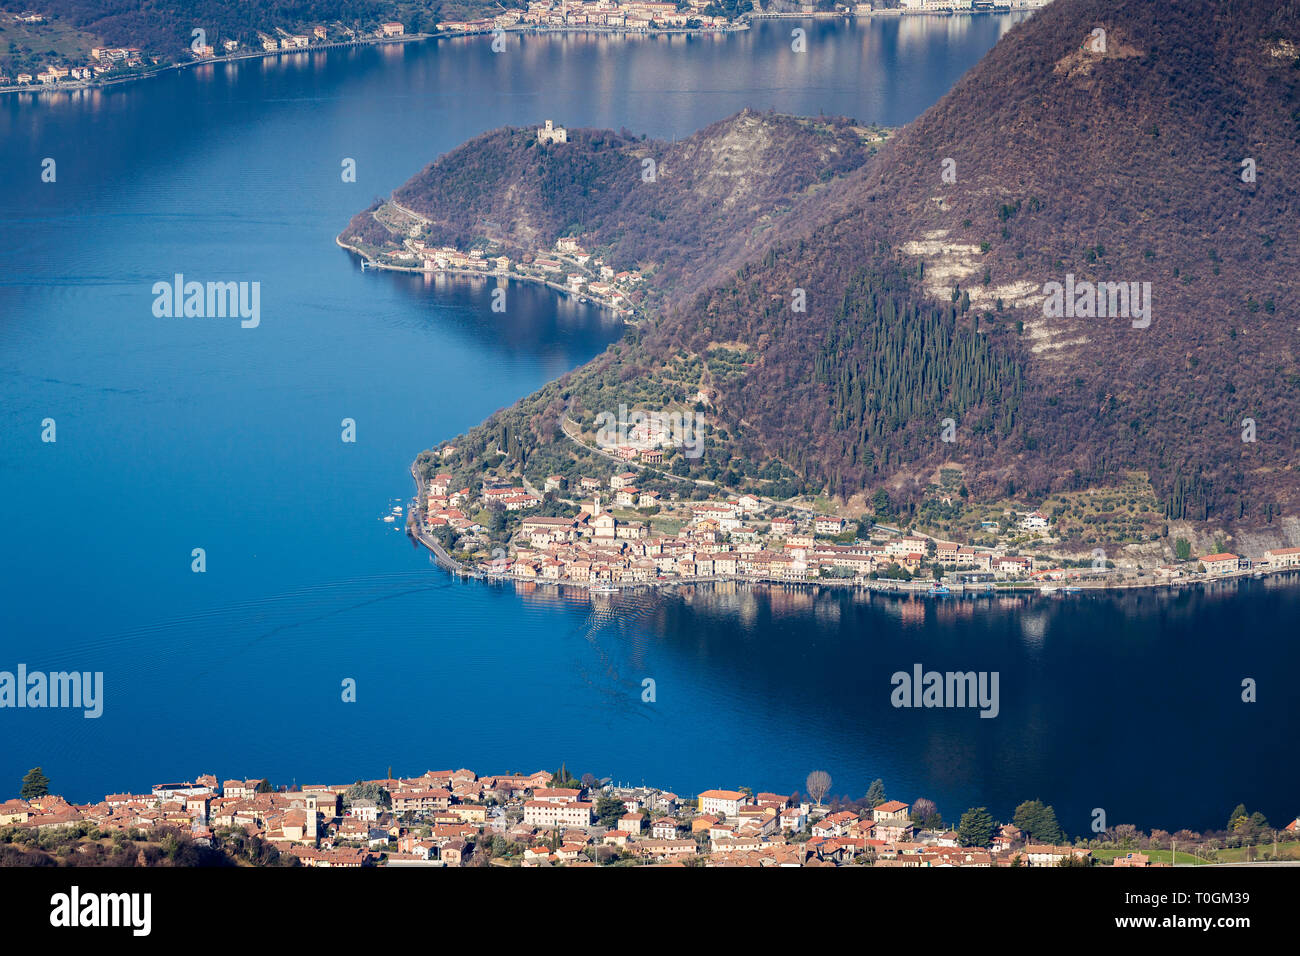 Lake Iseo with the village of Sulzano and Peschiera Maraglio on Monte Isola island, Lombardy, Italy - Stock Image